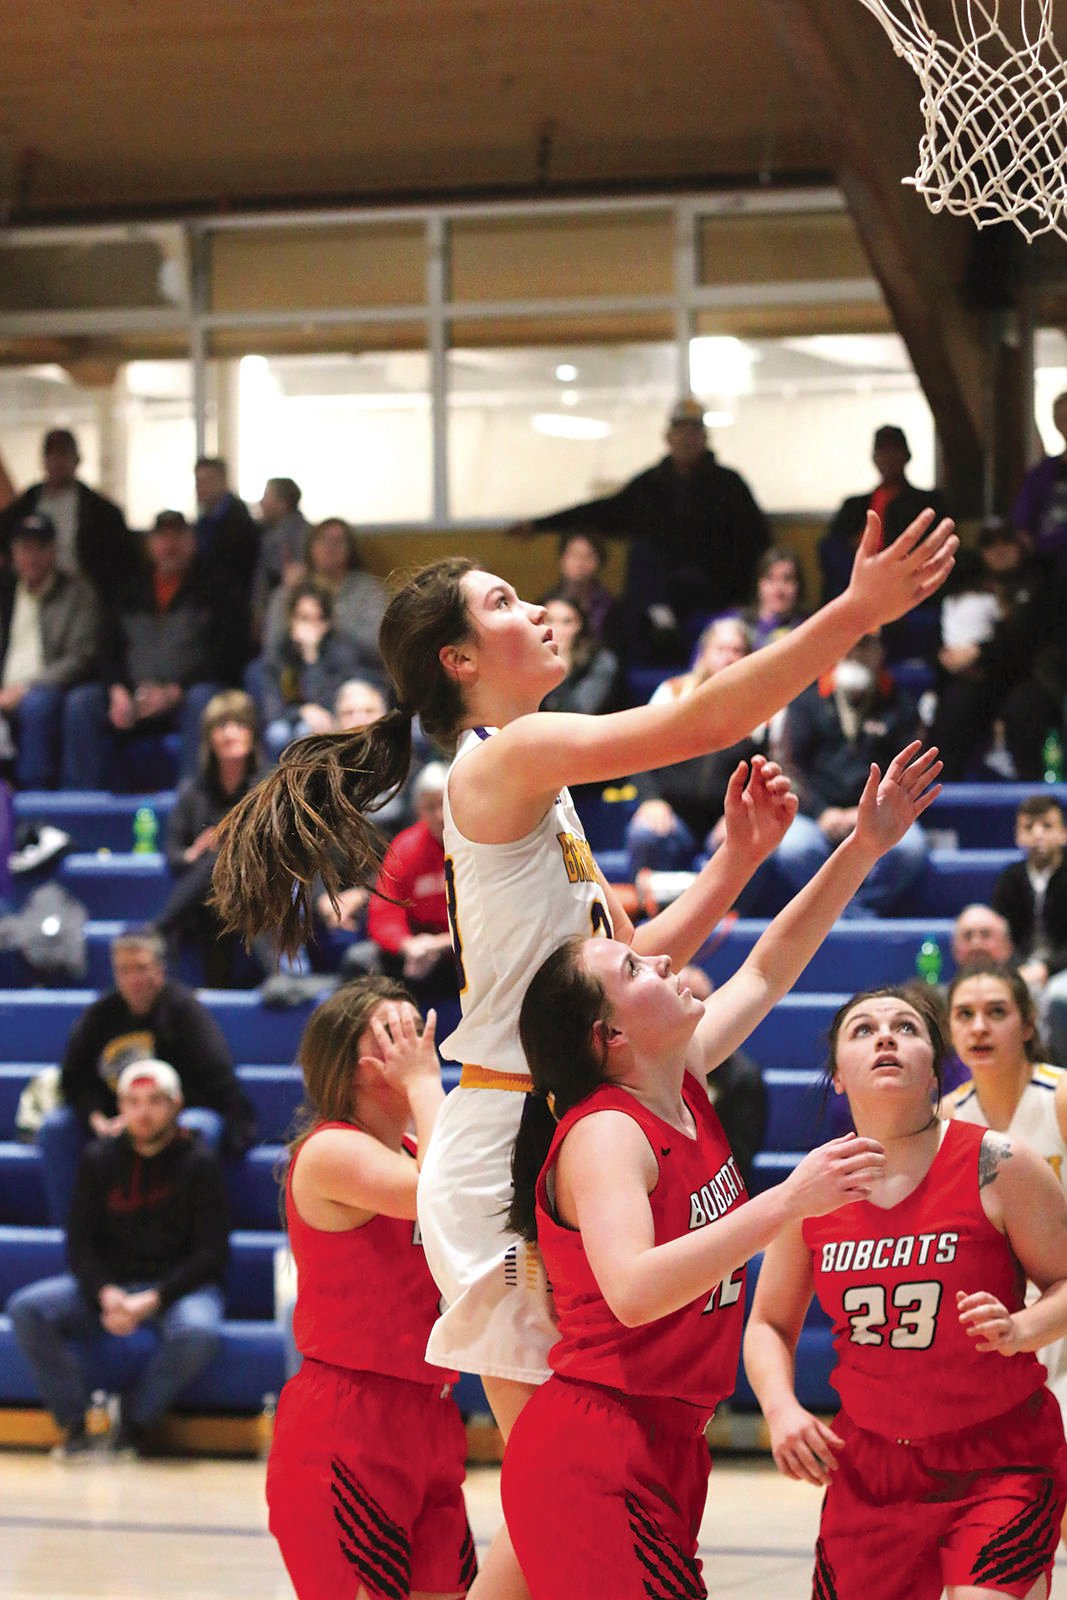 Western Trails Conference All-Conference team announced